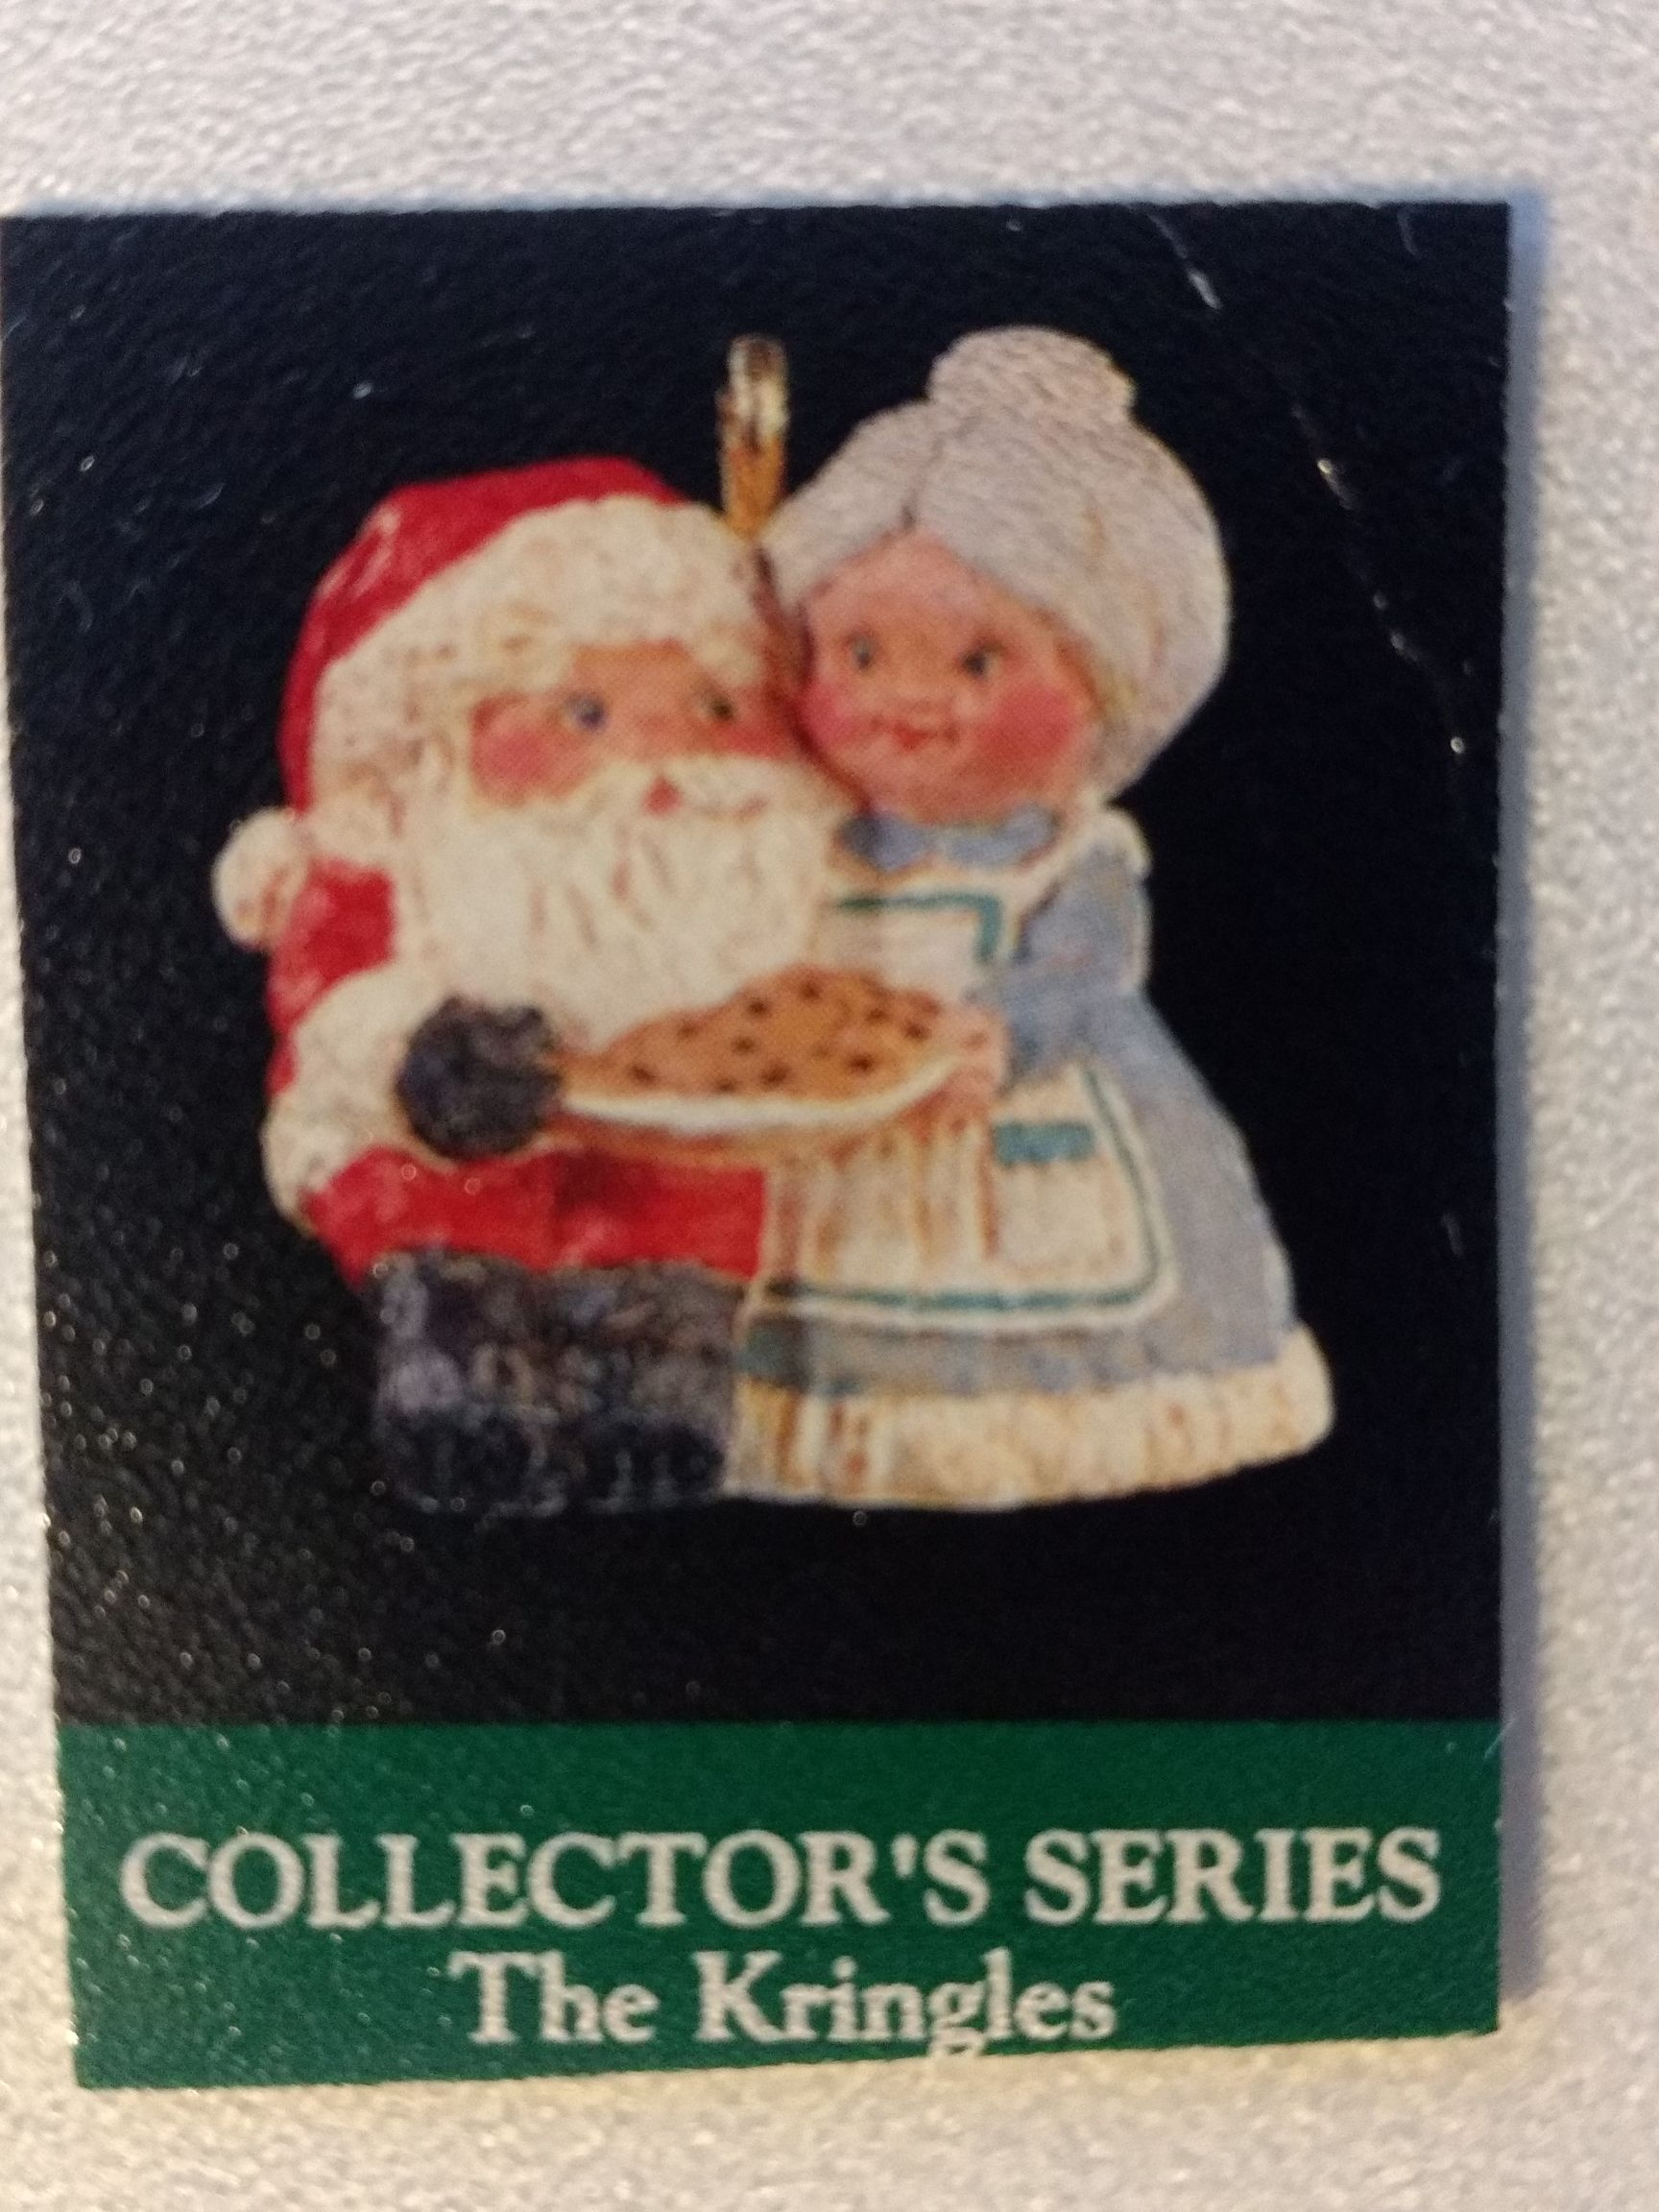 Z - Santa - The Kringles Ornament - Hallmark front image (front cover)